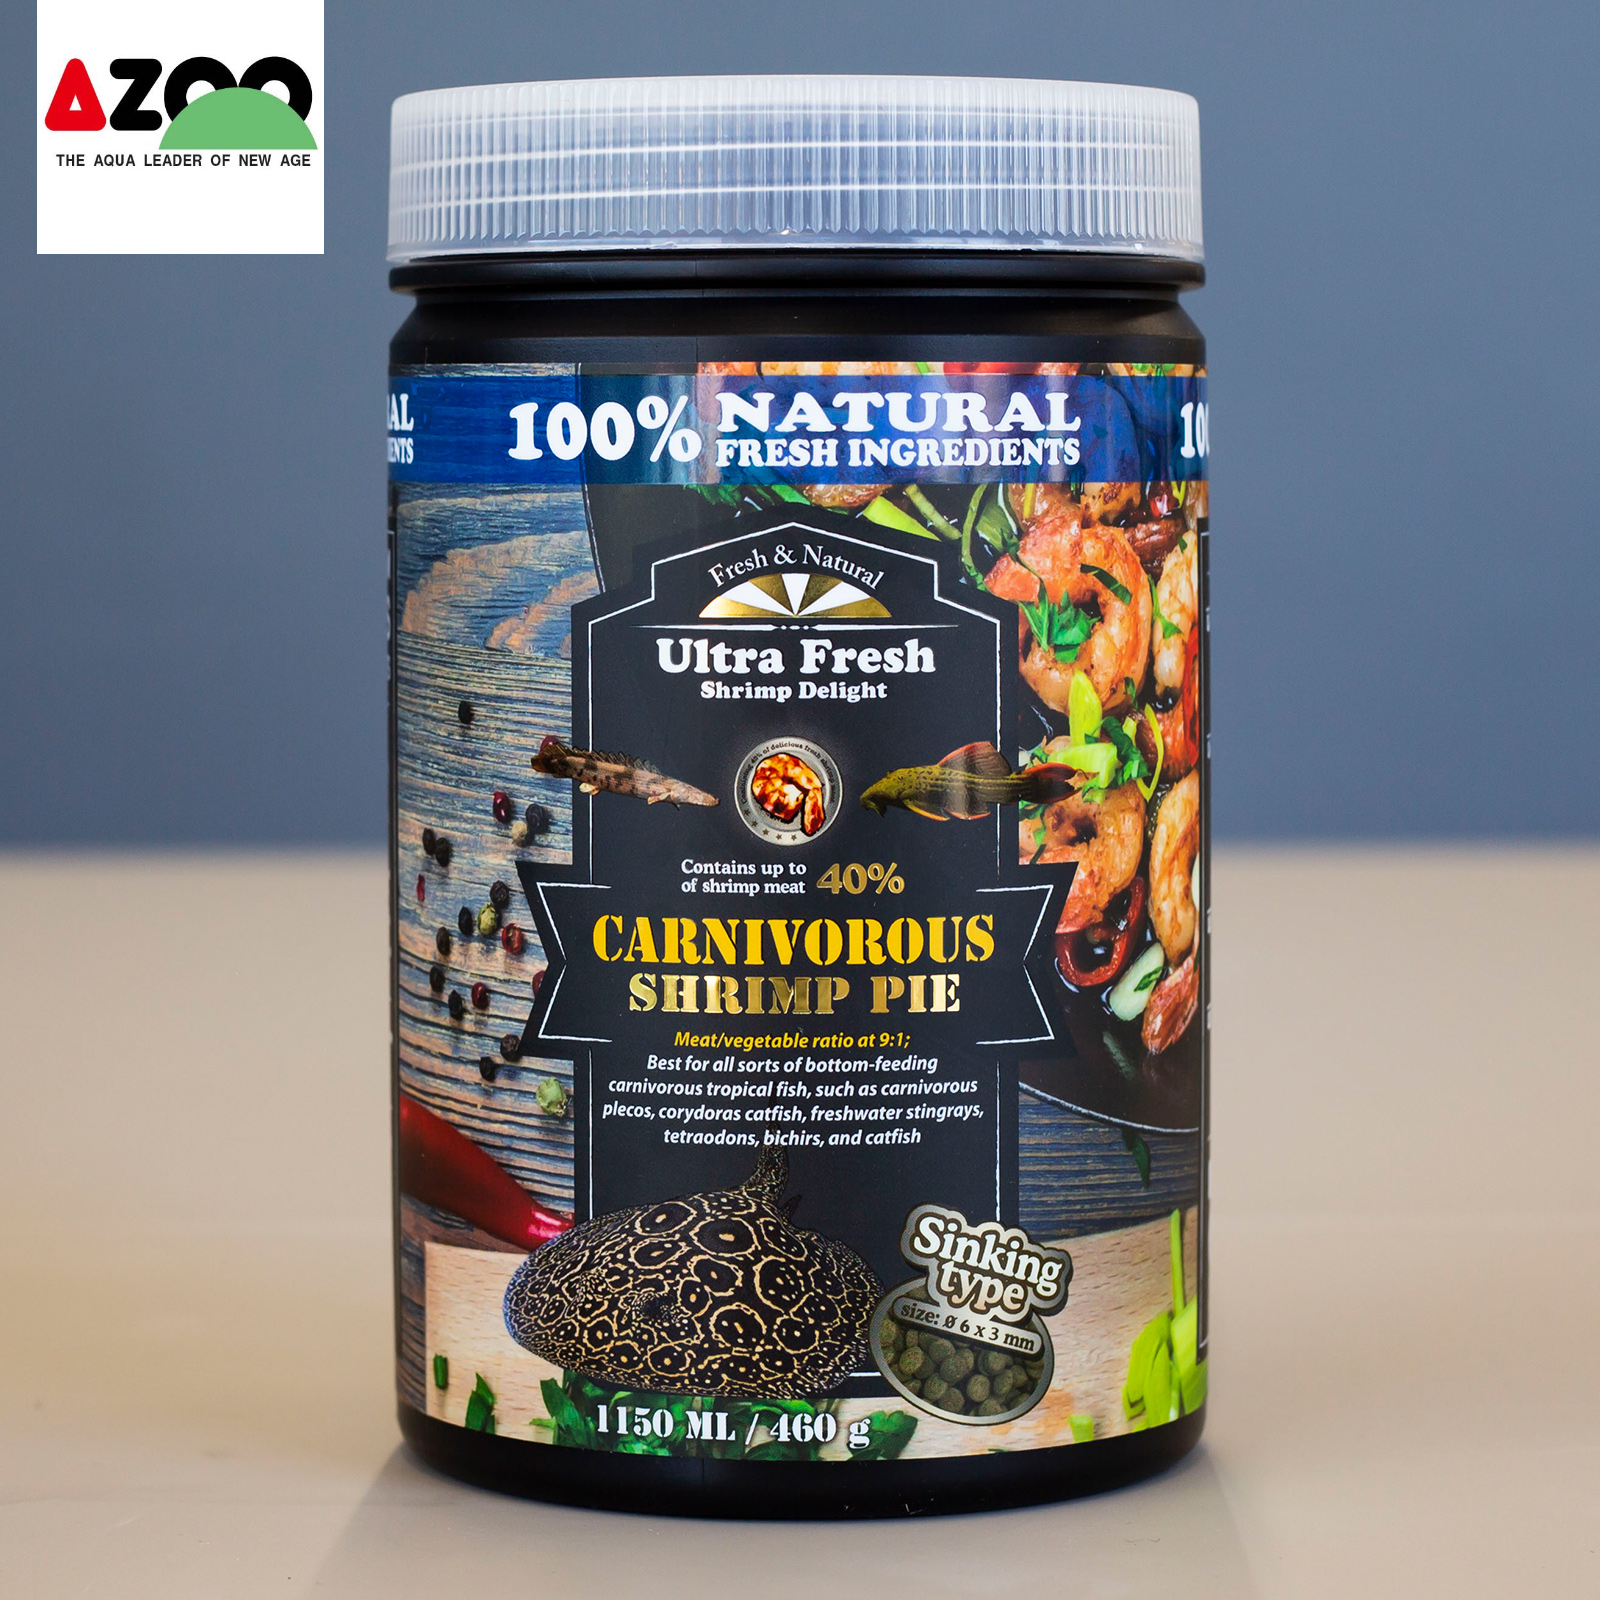 AZOO Carnivorous Shrimp Pie 1150ml/460g